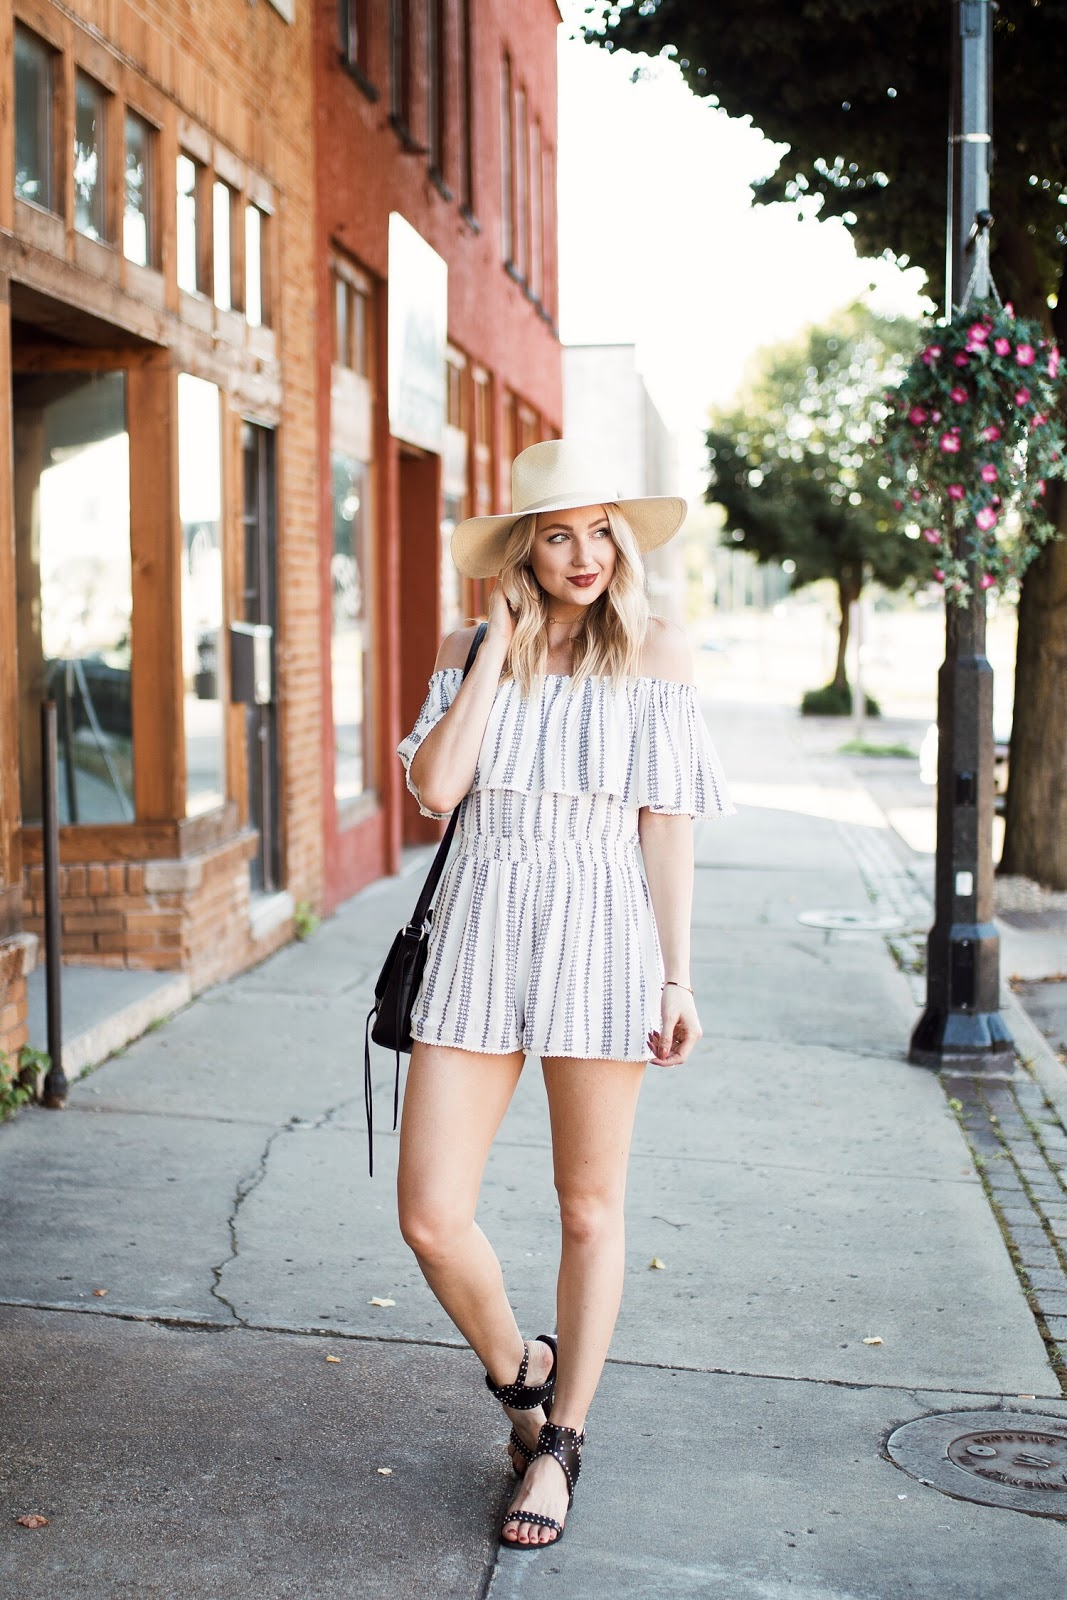 Lulus off-the-shoulder ruffle romper // 4th of July outfit idea